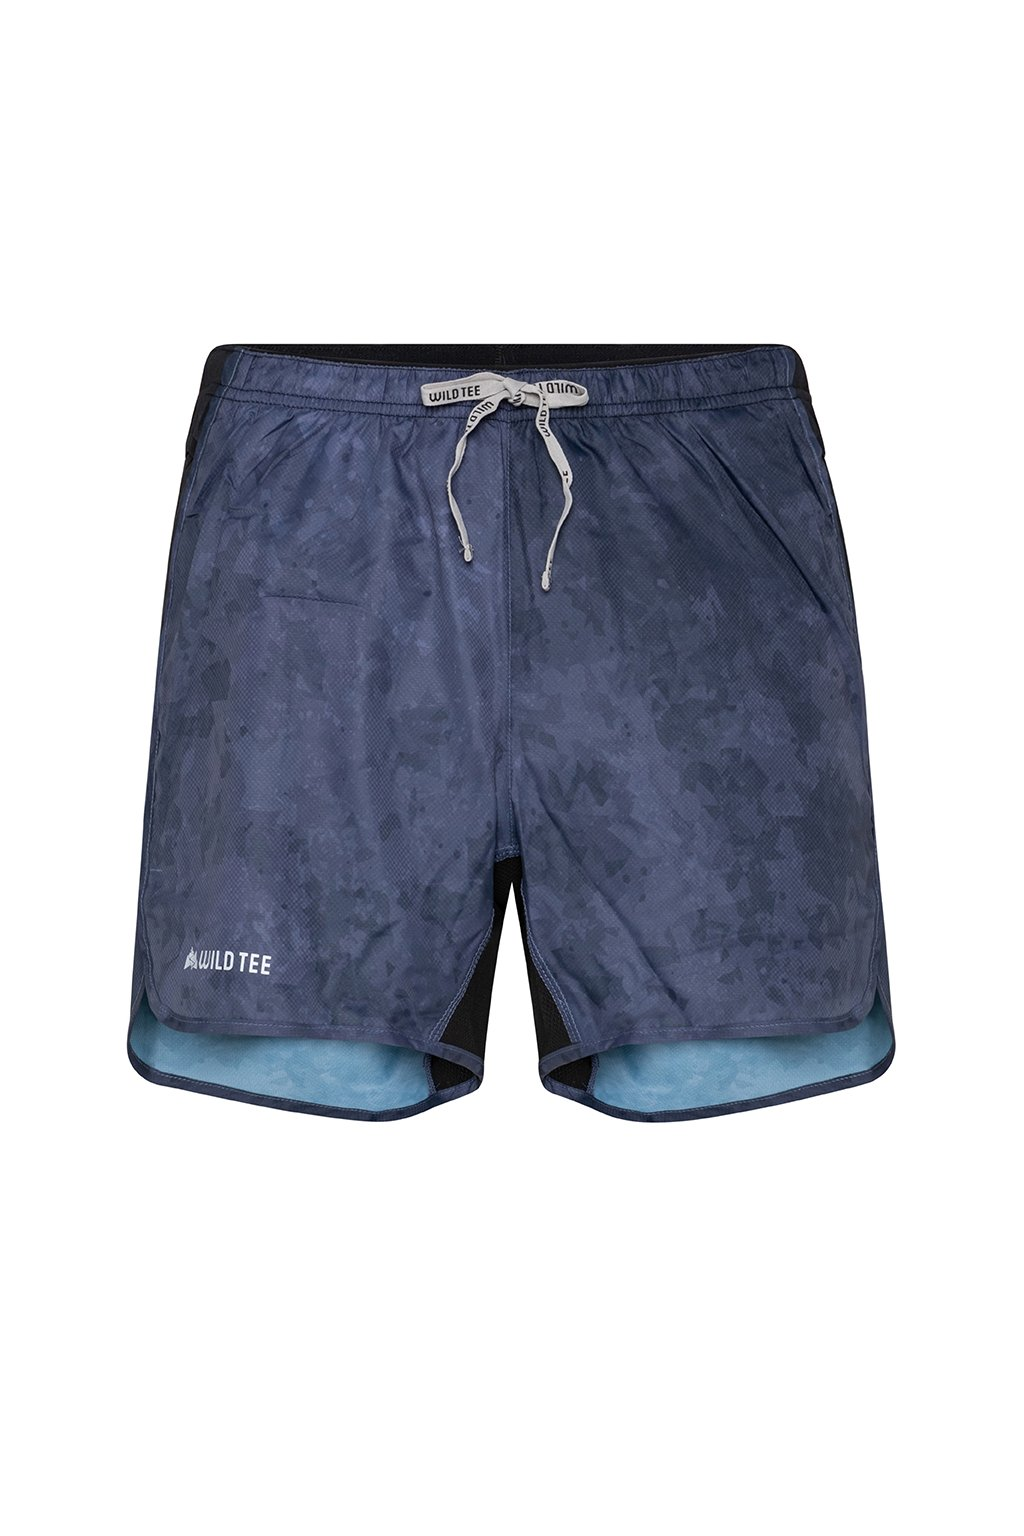 BRYCE SHORTS GREY MEN